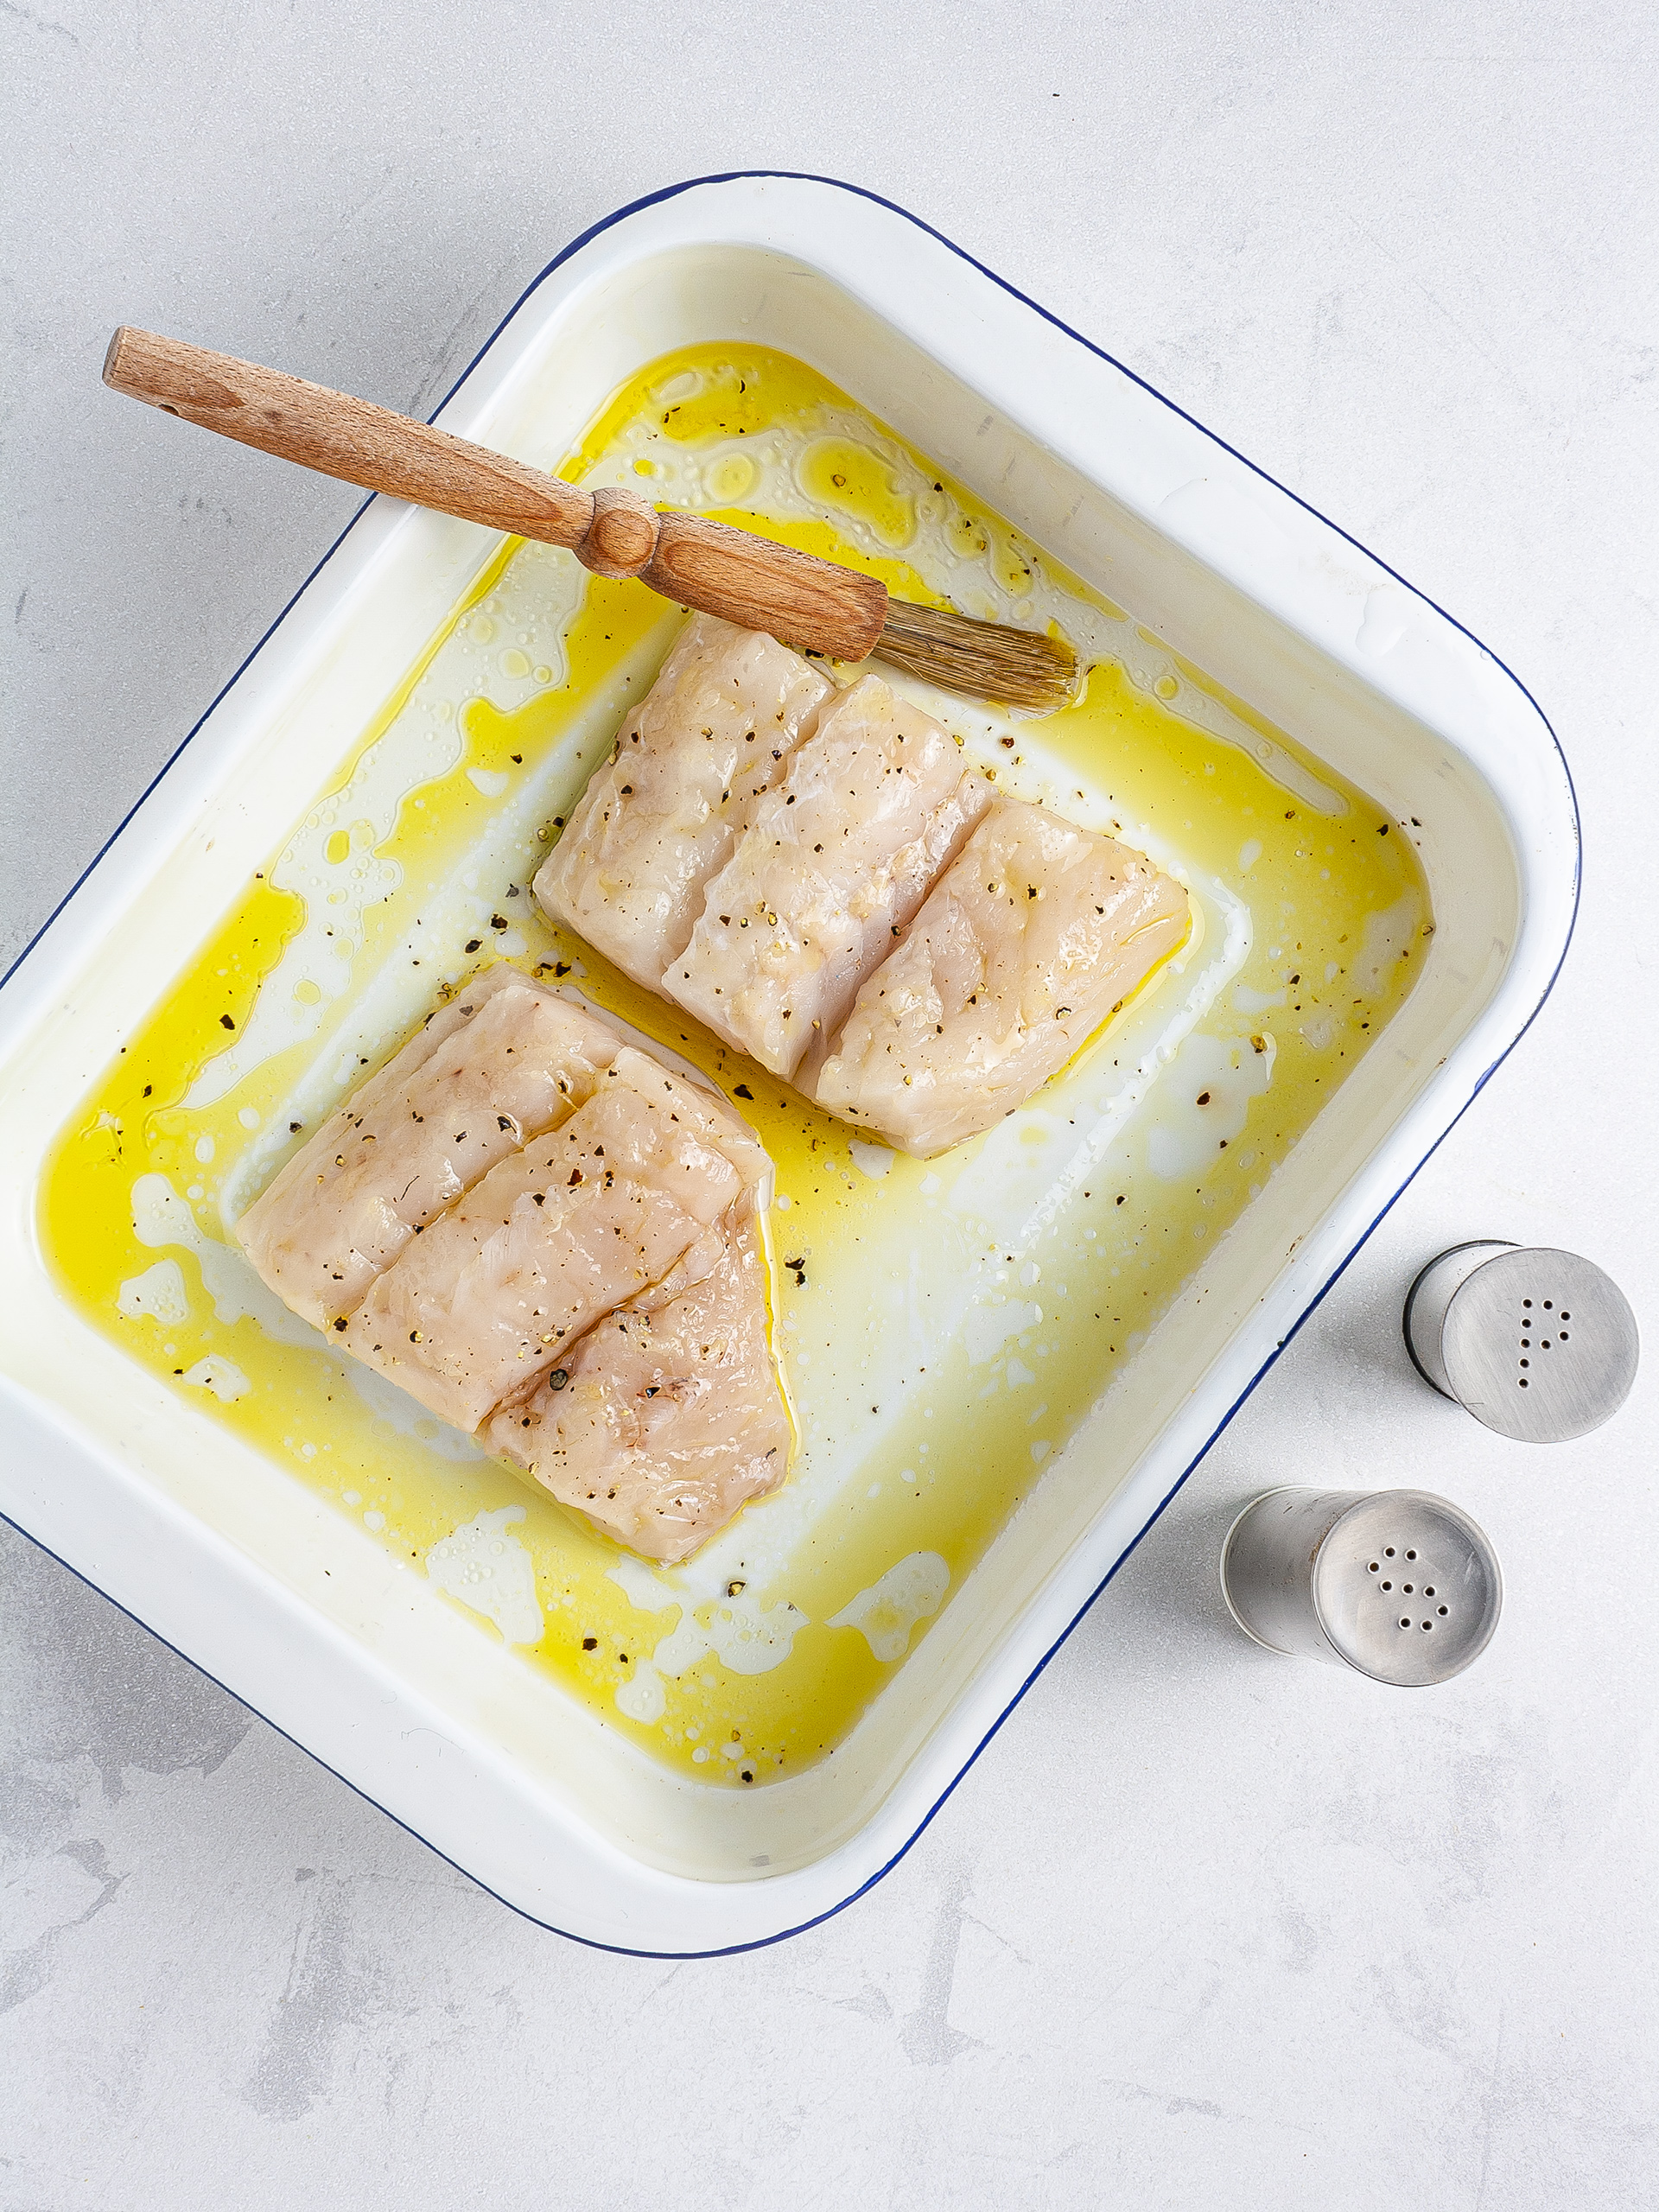 Hake fillet brushed with oil and seasoned with salt and pepper